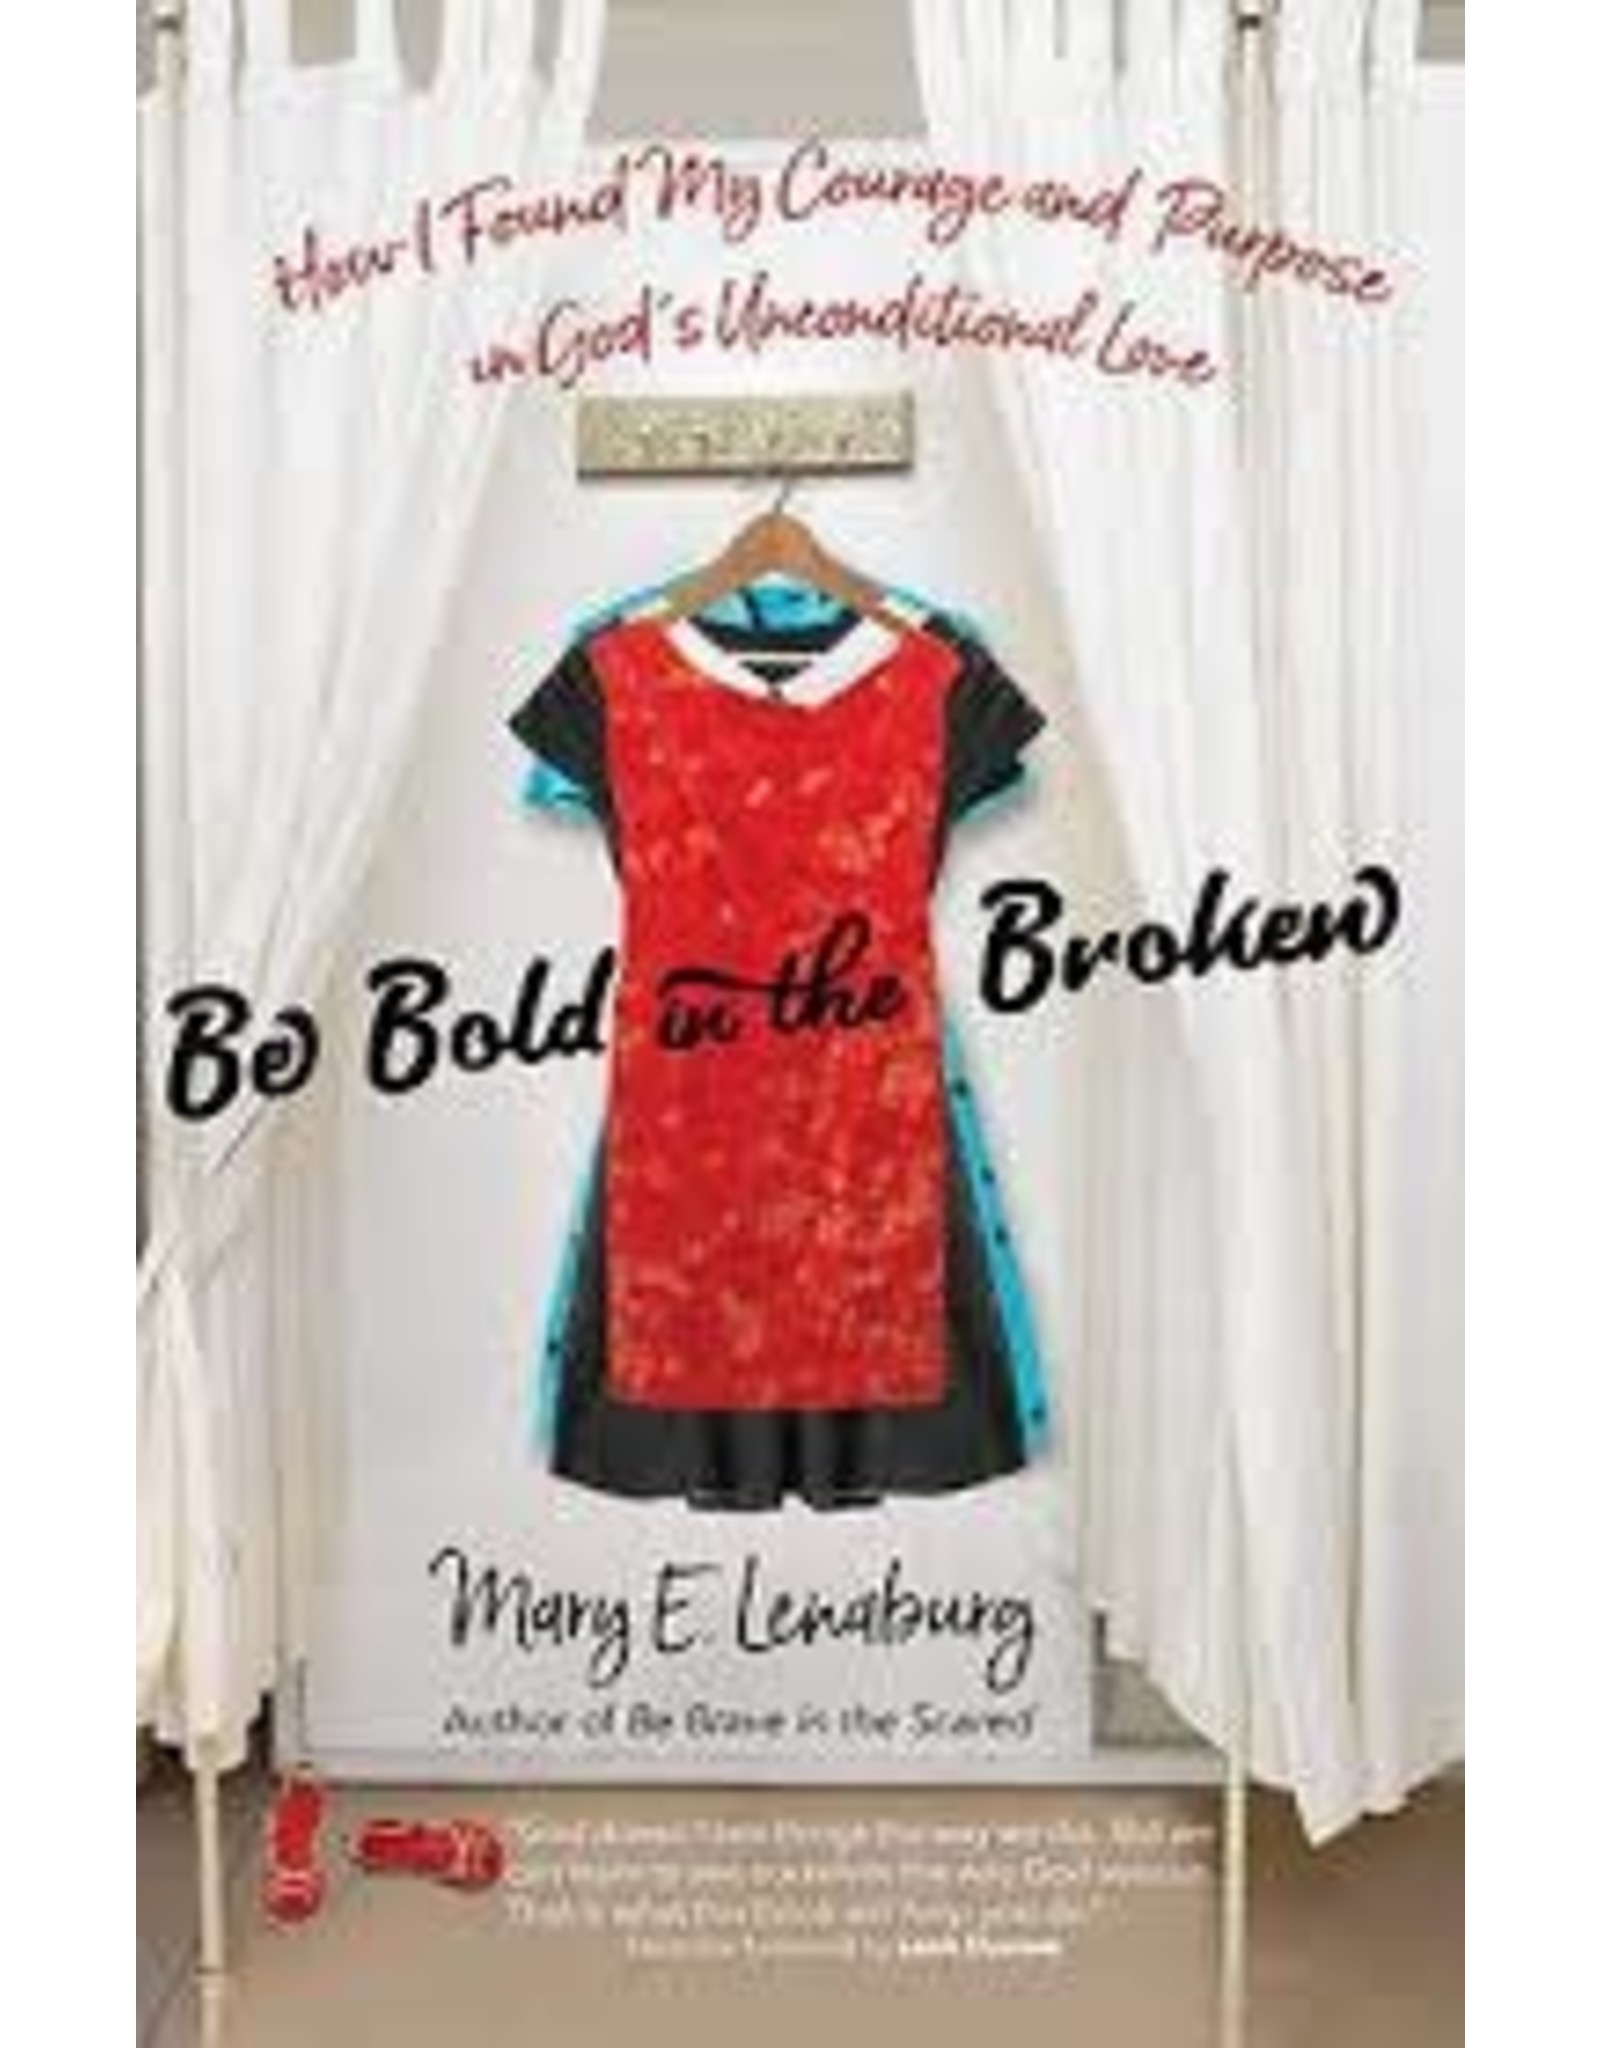 Be Bold in the Broken: How I Found My Courage & Purpose in God's Unconditional Love